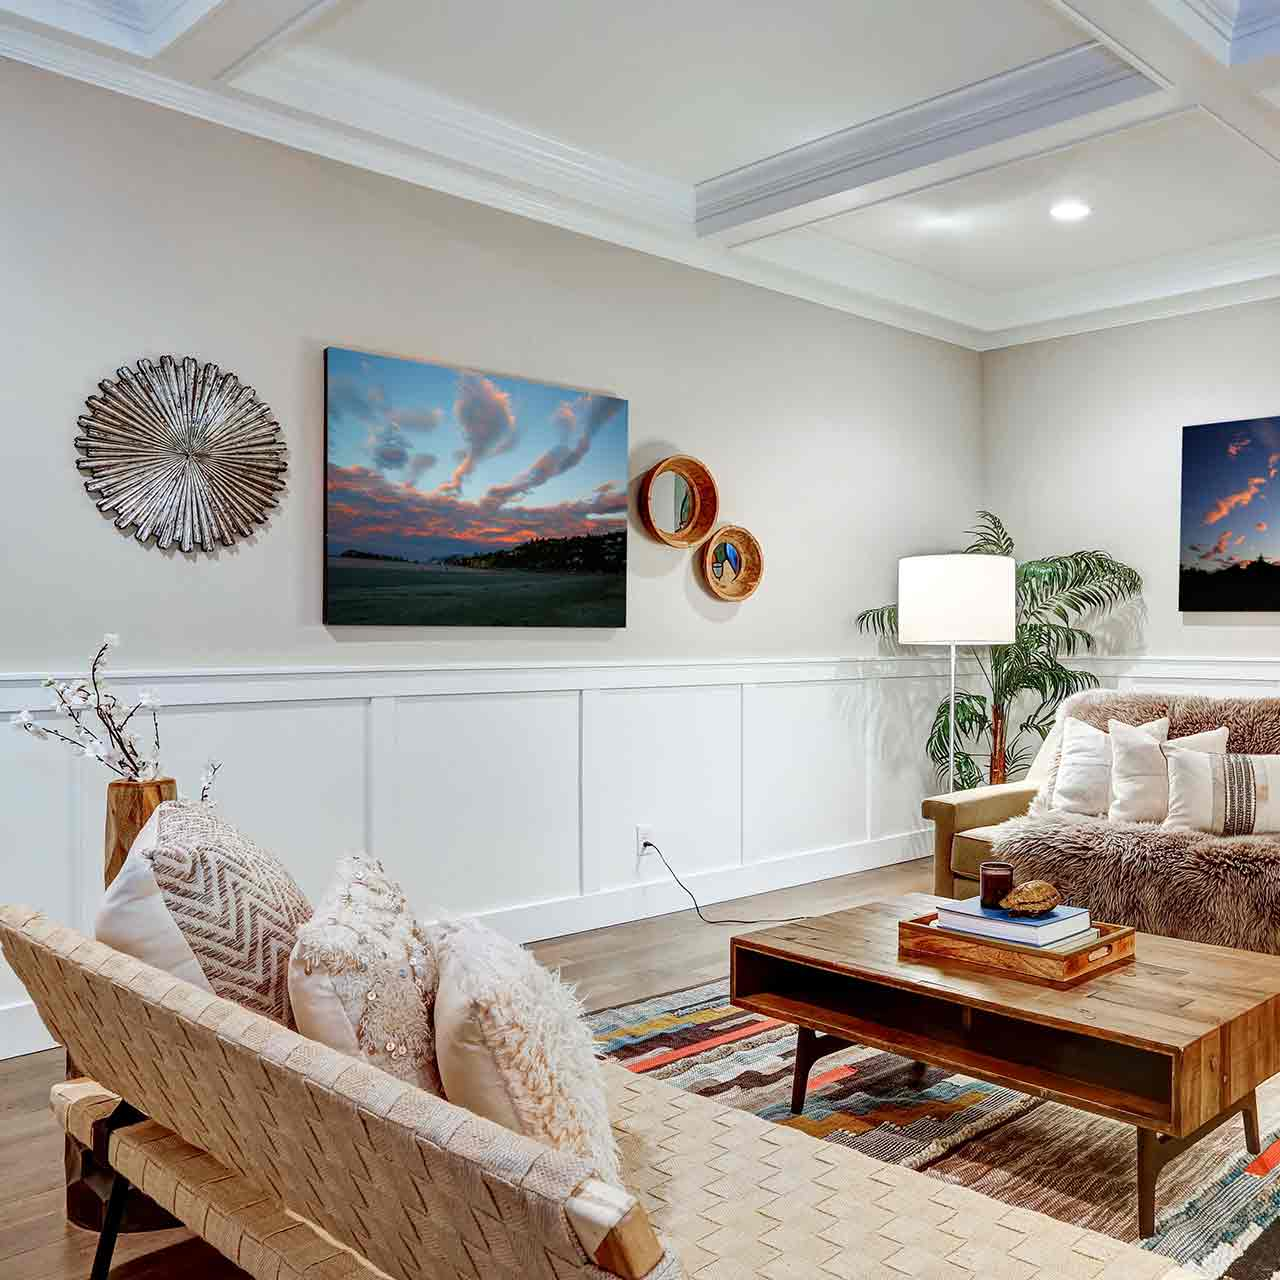 Craftsman style living room designs include a lot of rich wood trims and solid wooden furniture